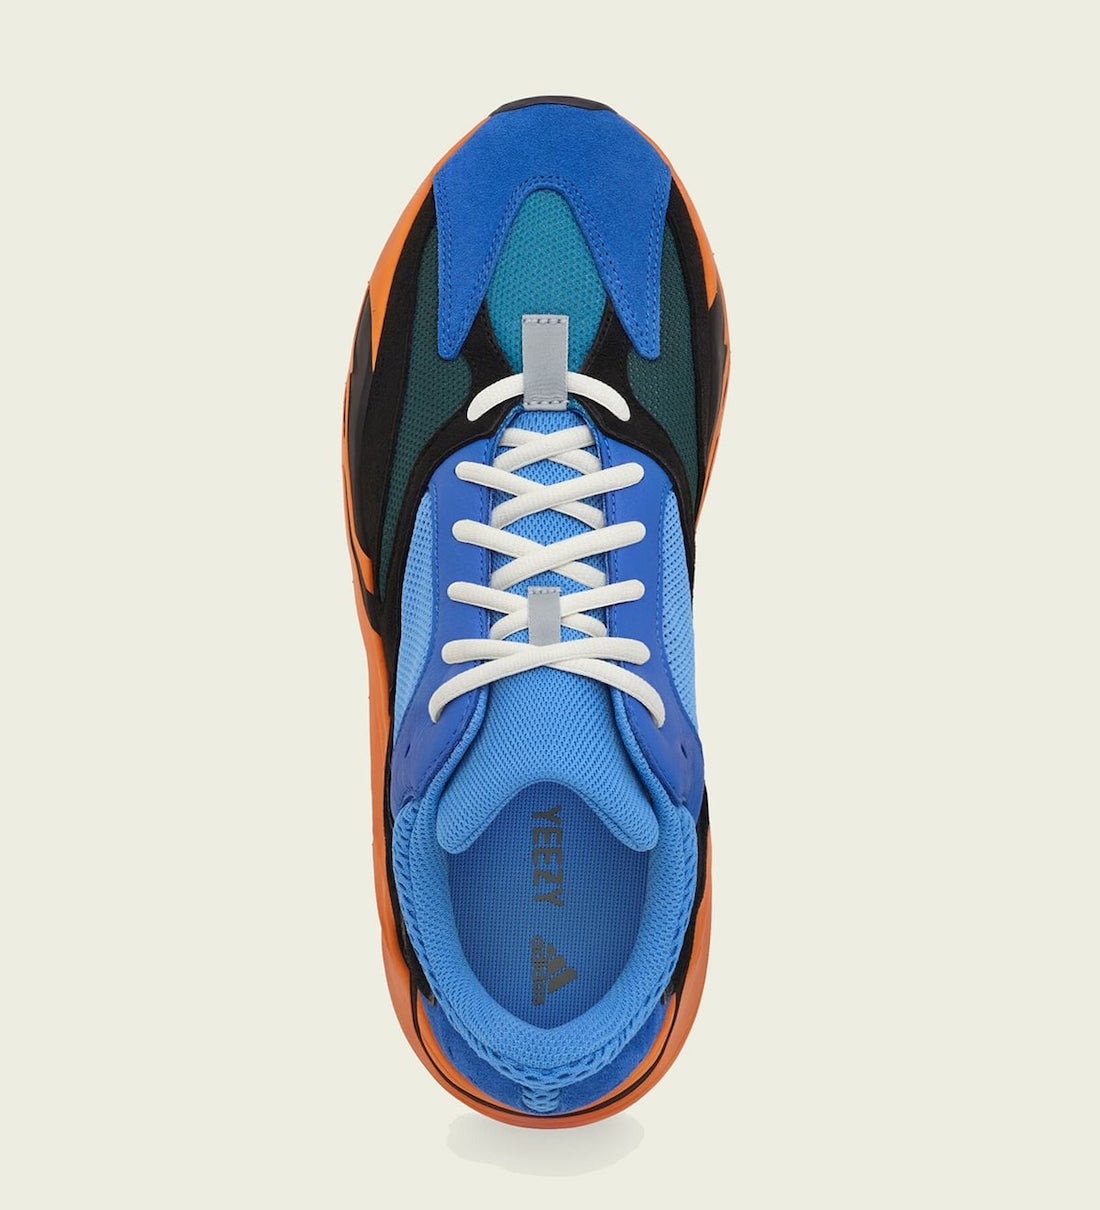 adidas Yeezy Boost 700 Bright Blue GZ0541 Release Date Info